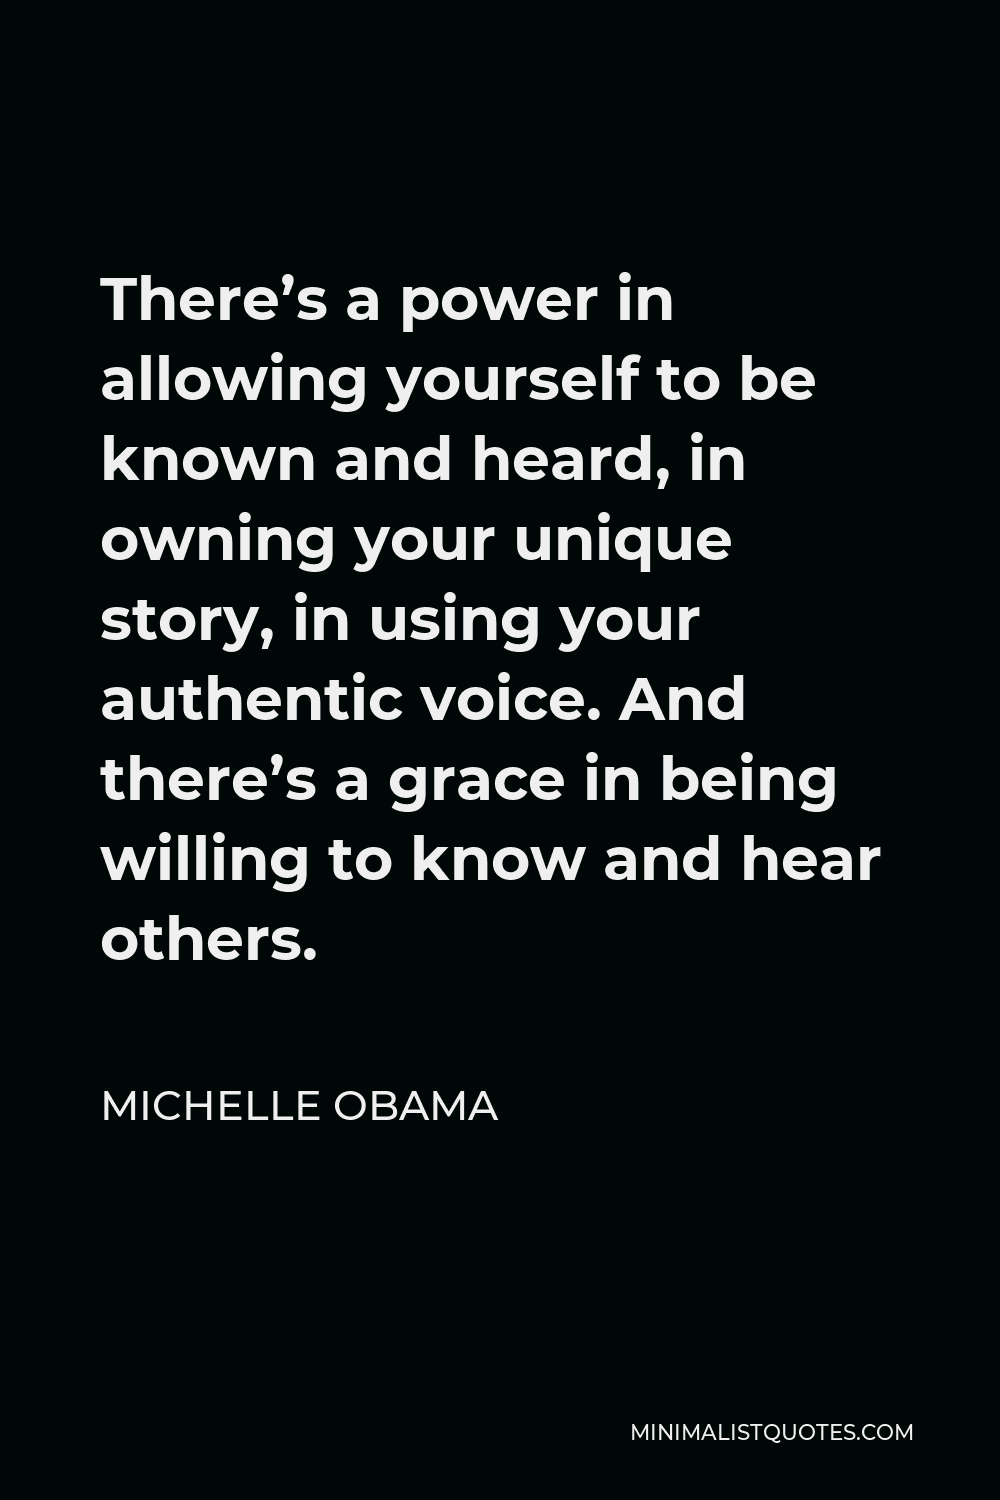 Michelle Obama Quote - There's a power in allowing yourself to be known and heard, in owning your unique story, in using your authentic voice. And there's a grace in being willing to know and hear others.